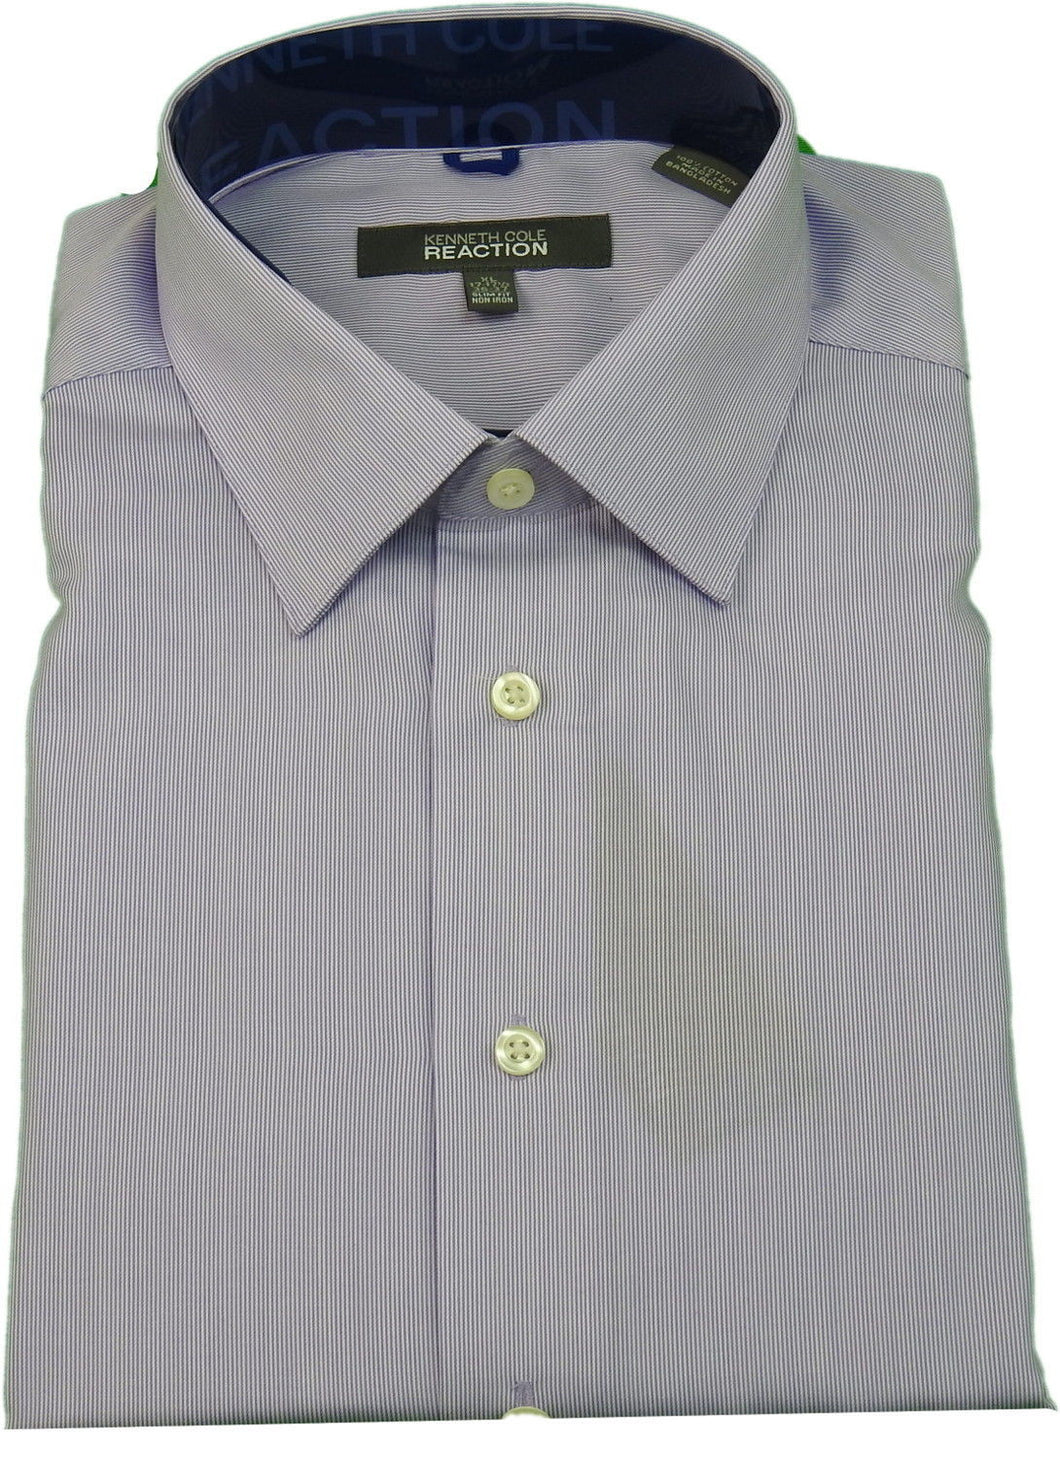 Kenneth Cole Reaction Men's Slim Fit Non Iron Button Down Shirt,Lt. Purple/White